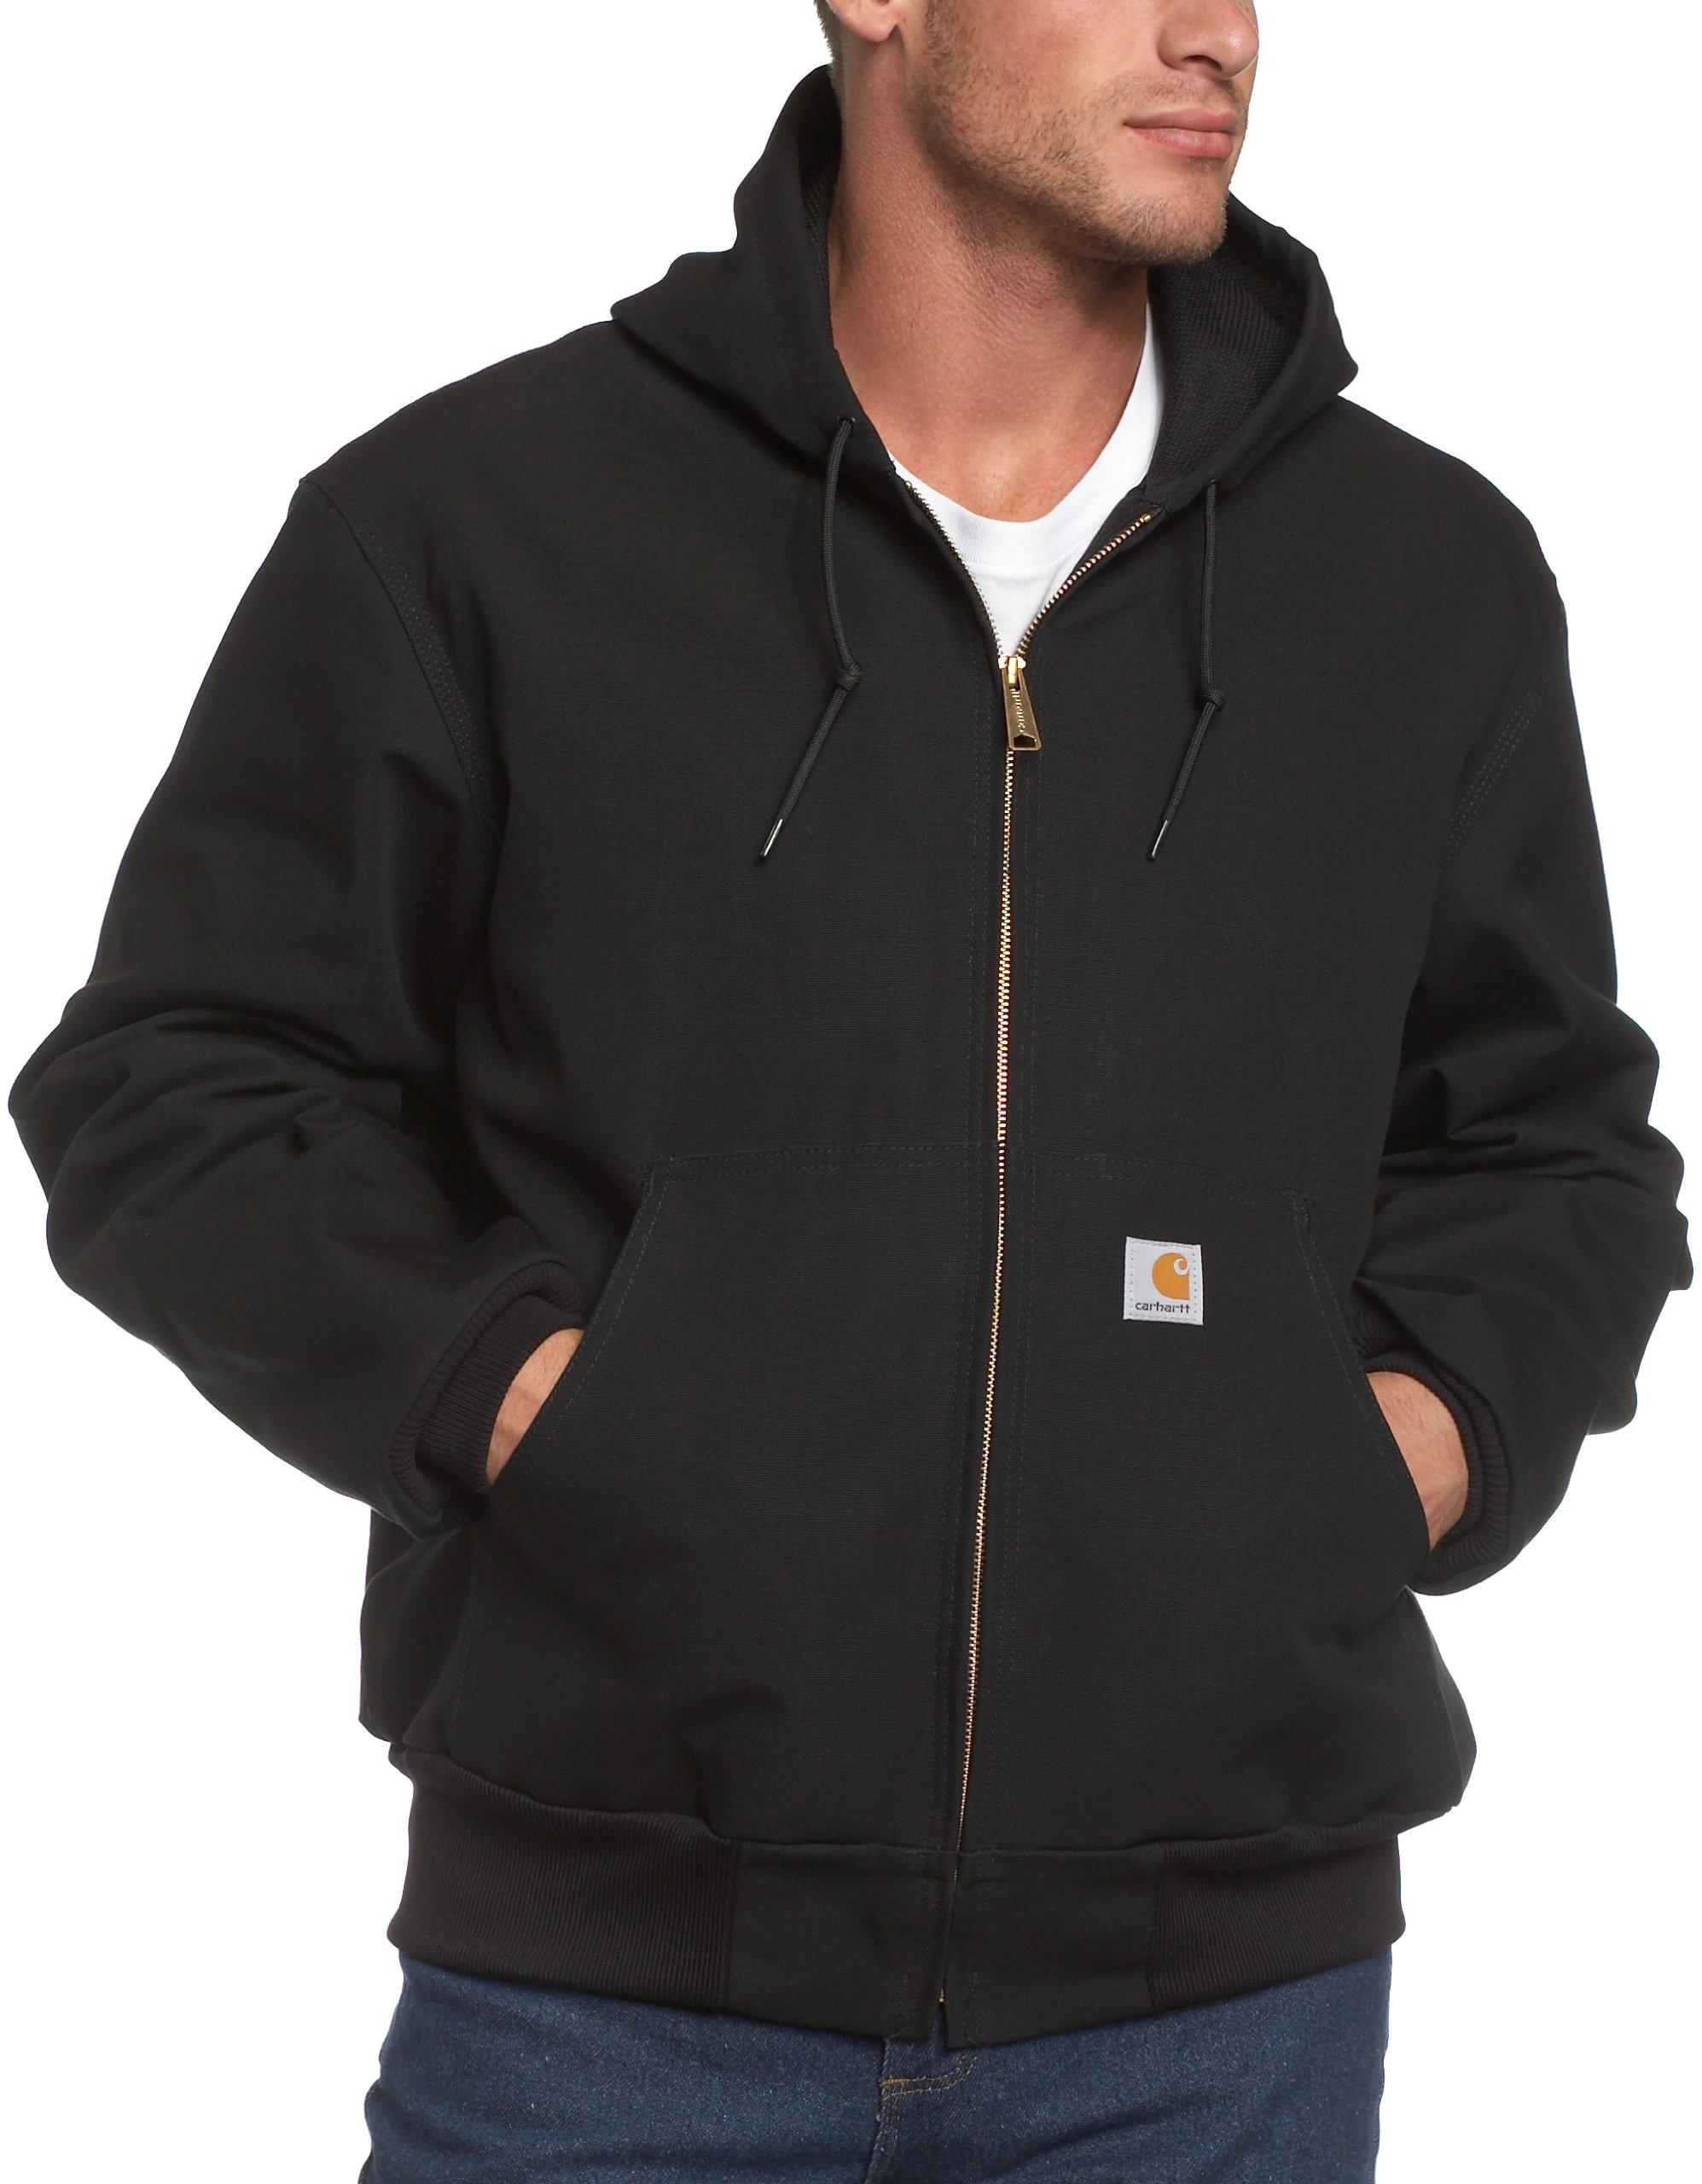 Carhartt Men's Big Thermal Lined Duck Active Jacket J131 (Regular and Big & Tall Sizes), Black, 4X-Large Tall by Carhartt